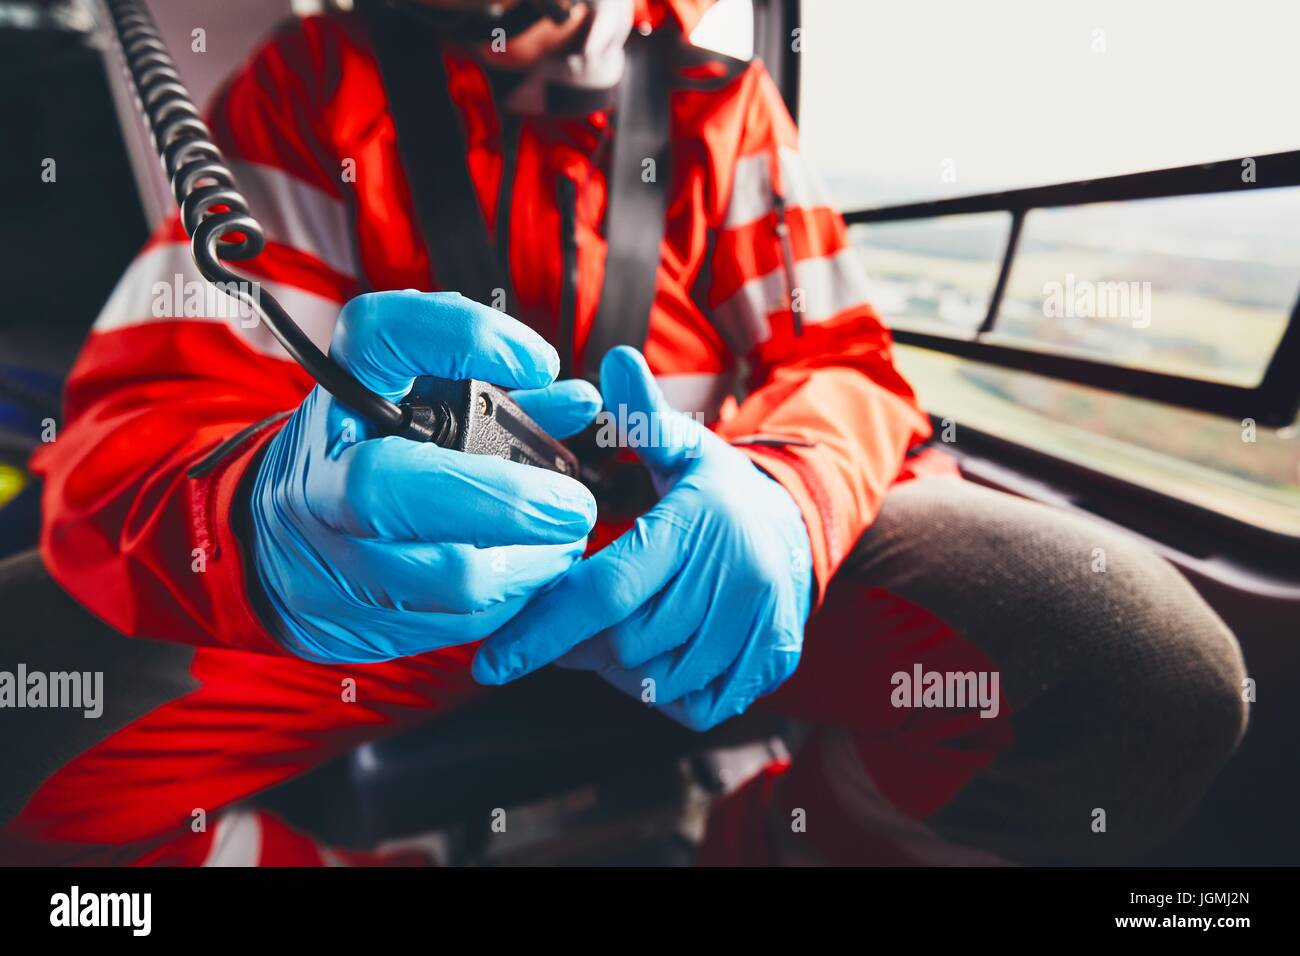 Alarm for helicopter emergency medical service. Doctor holding radio. Theme rescue, help and hope. - Stock Image